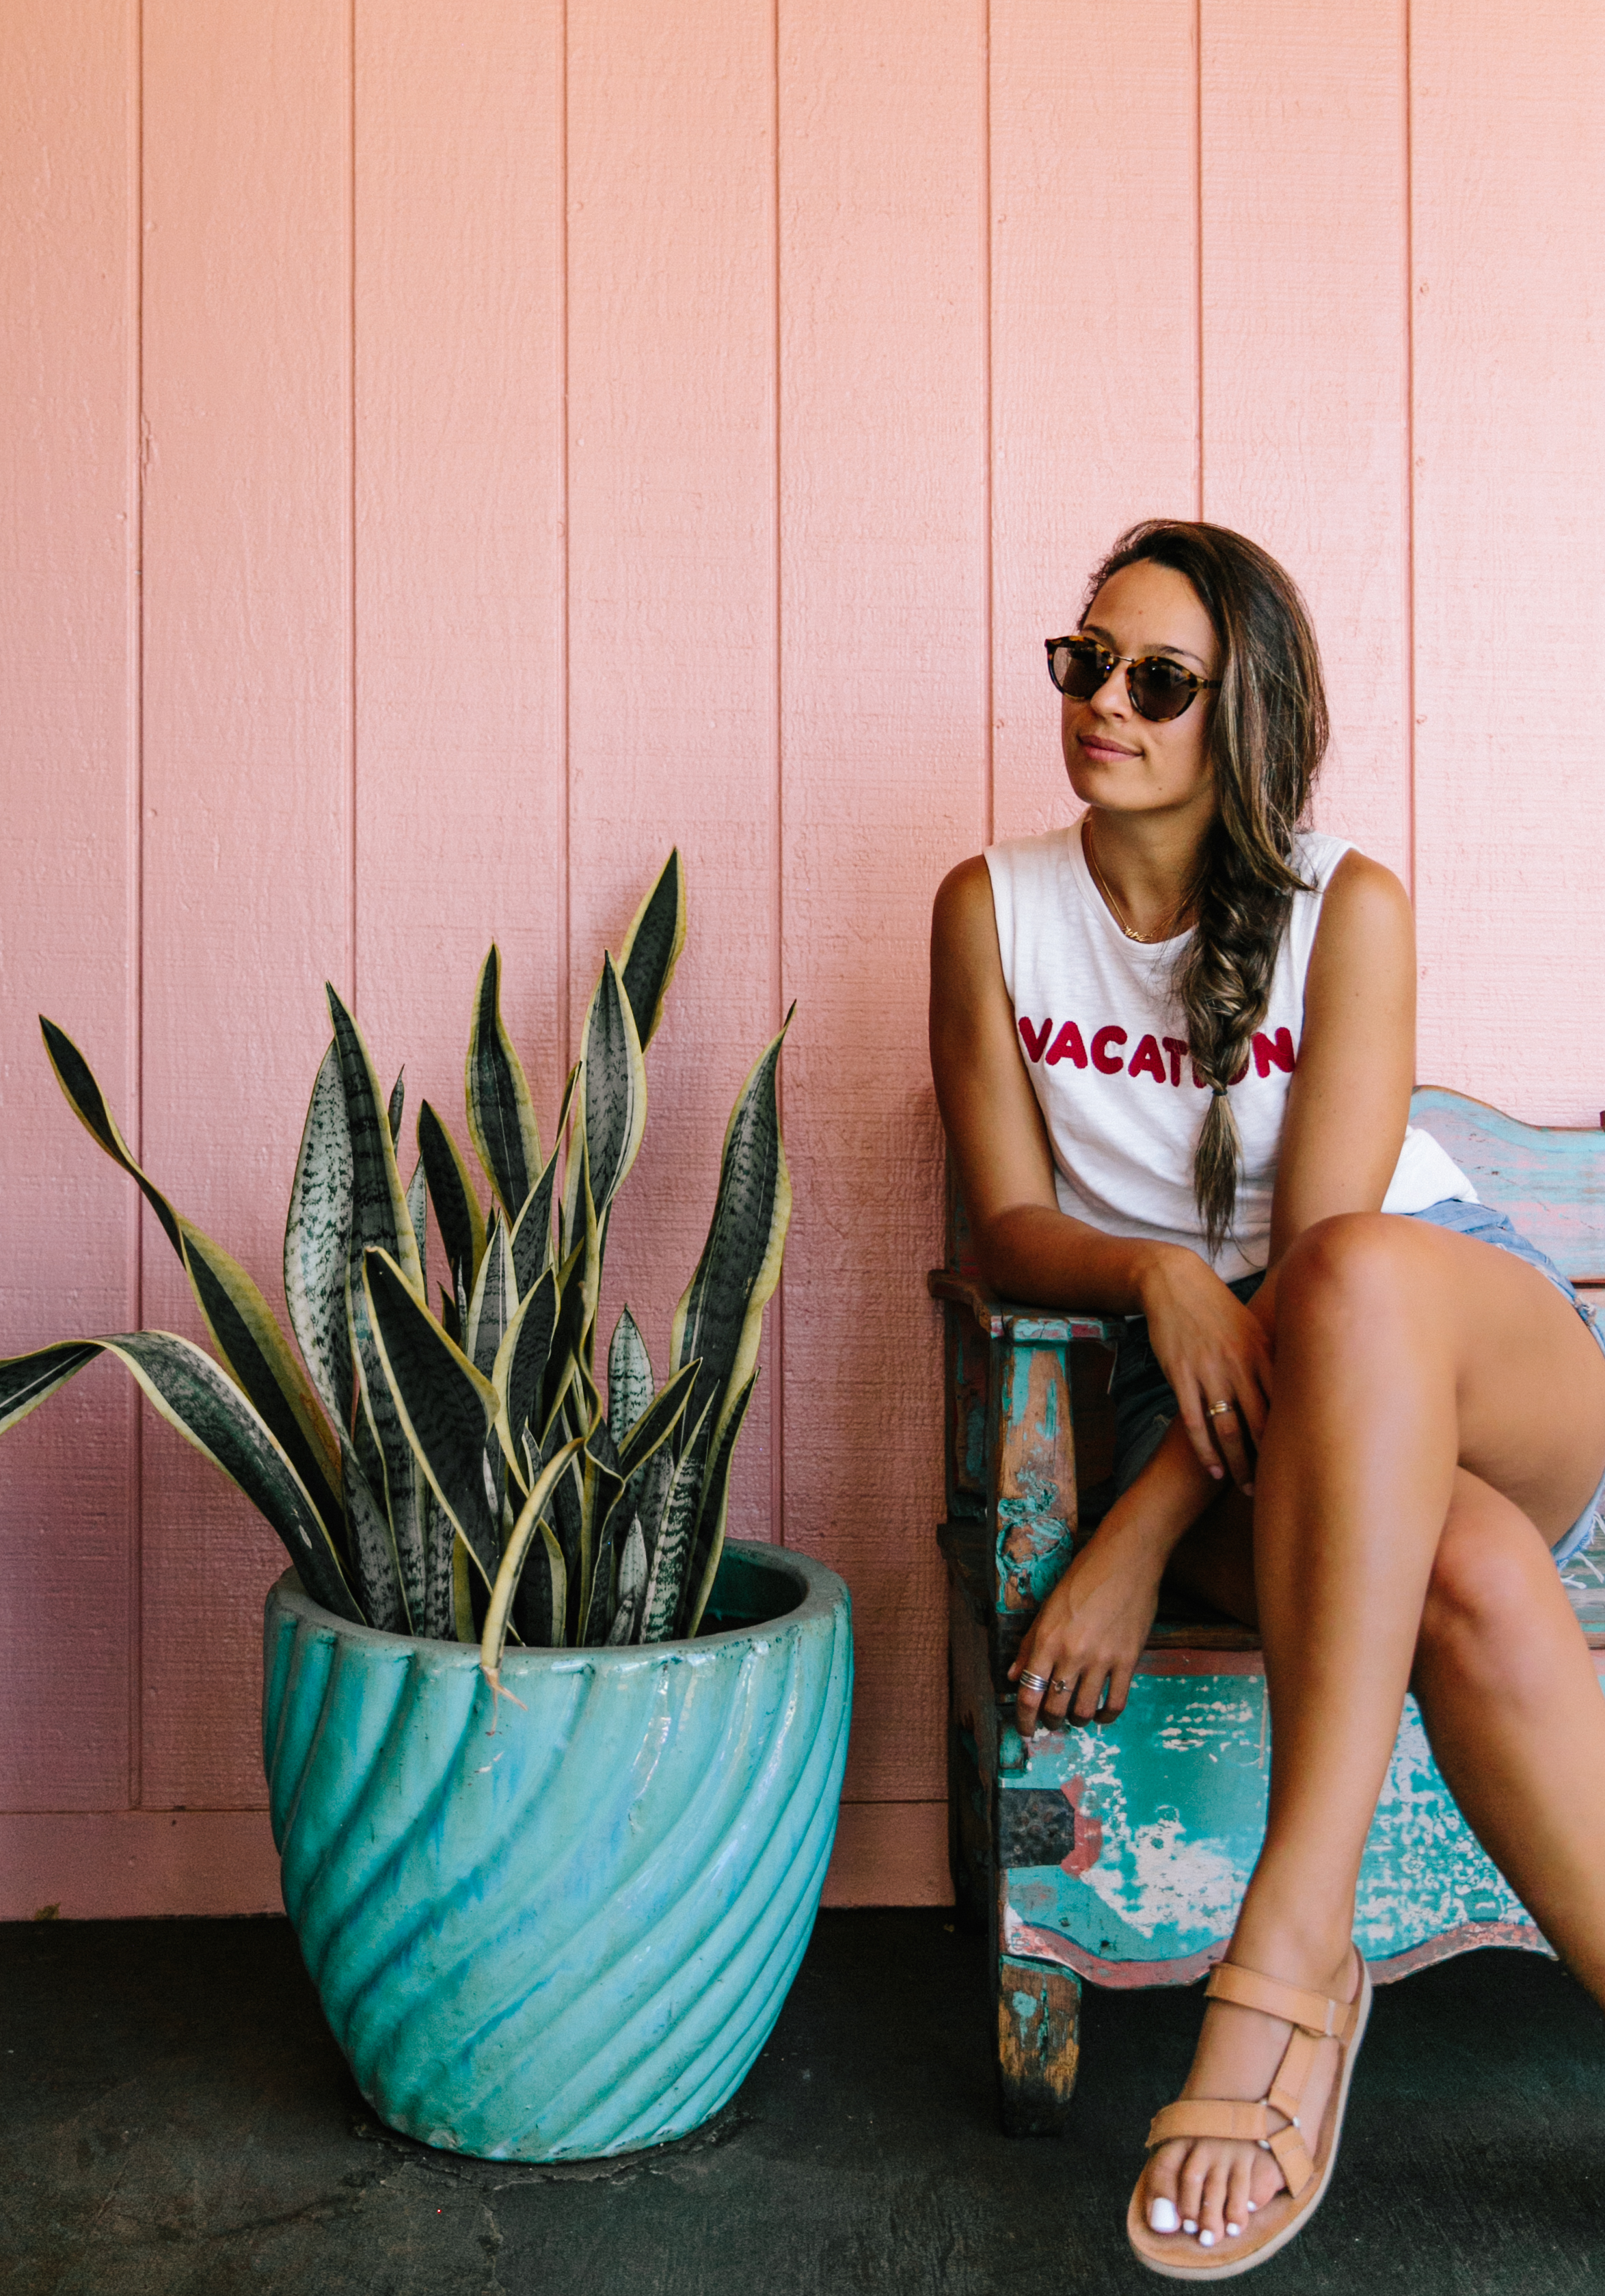 Frida's Beach House Maui | Madewell VACATION Tank | Things To Do In Lahaina | Things To Do in West Maui | Travel Inspiration | Hawaiian Island Hopping | Weekend In Maui | Guide to Spending The Weekend in Maui | Travel Blogger's Maui Recommendations via @elanaloo + elanaloo.com